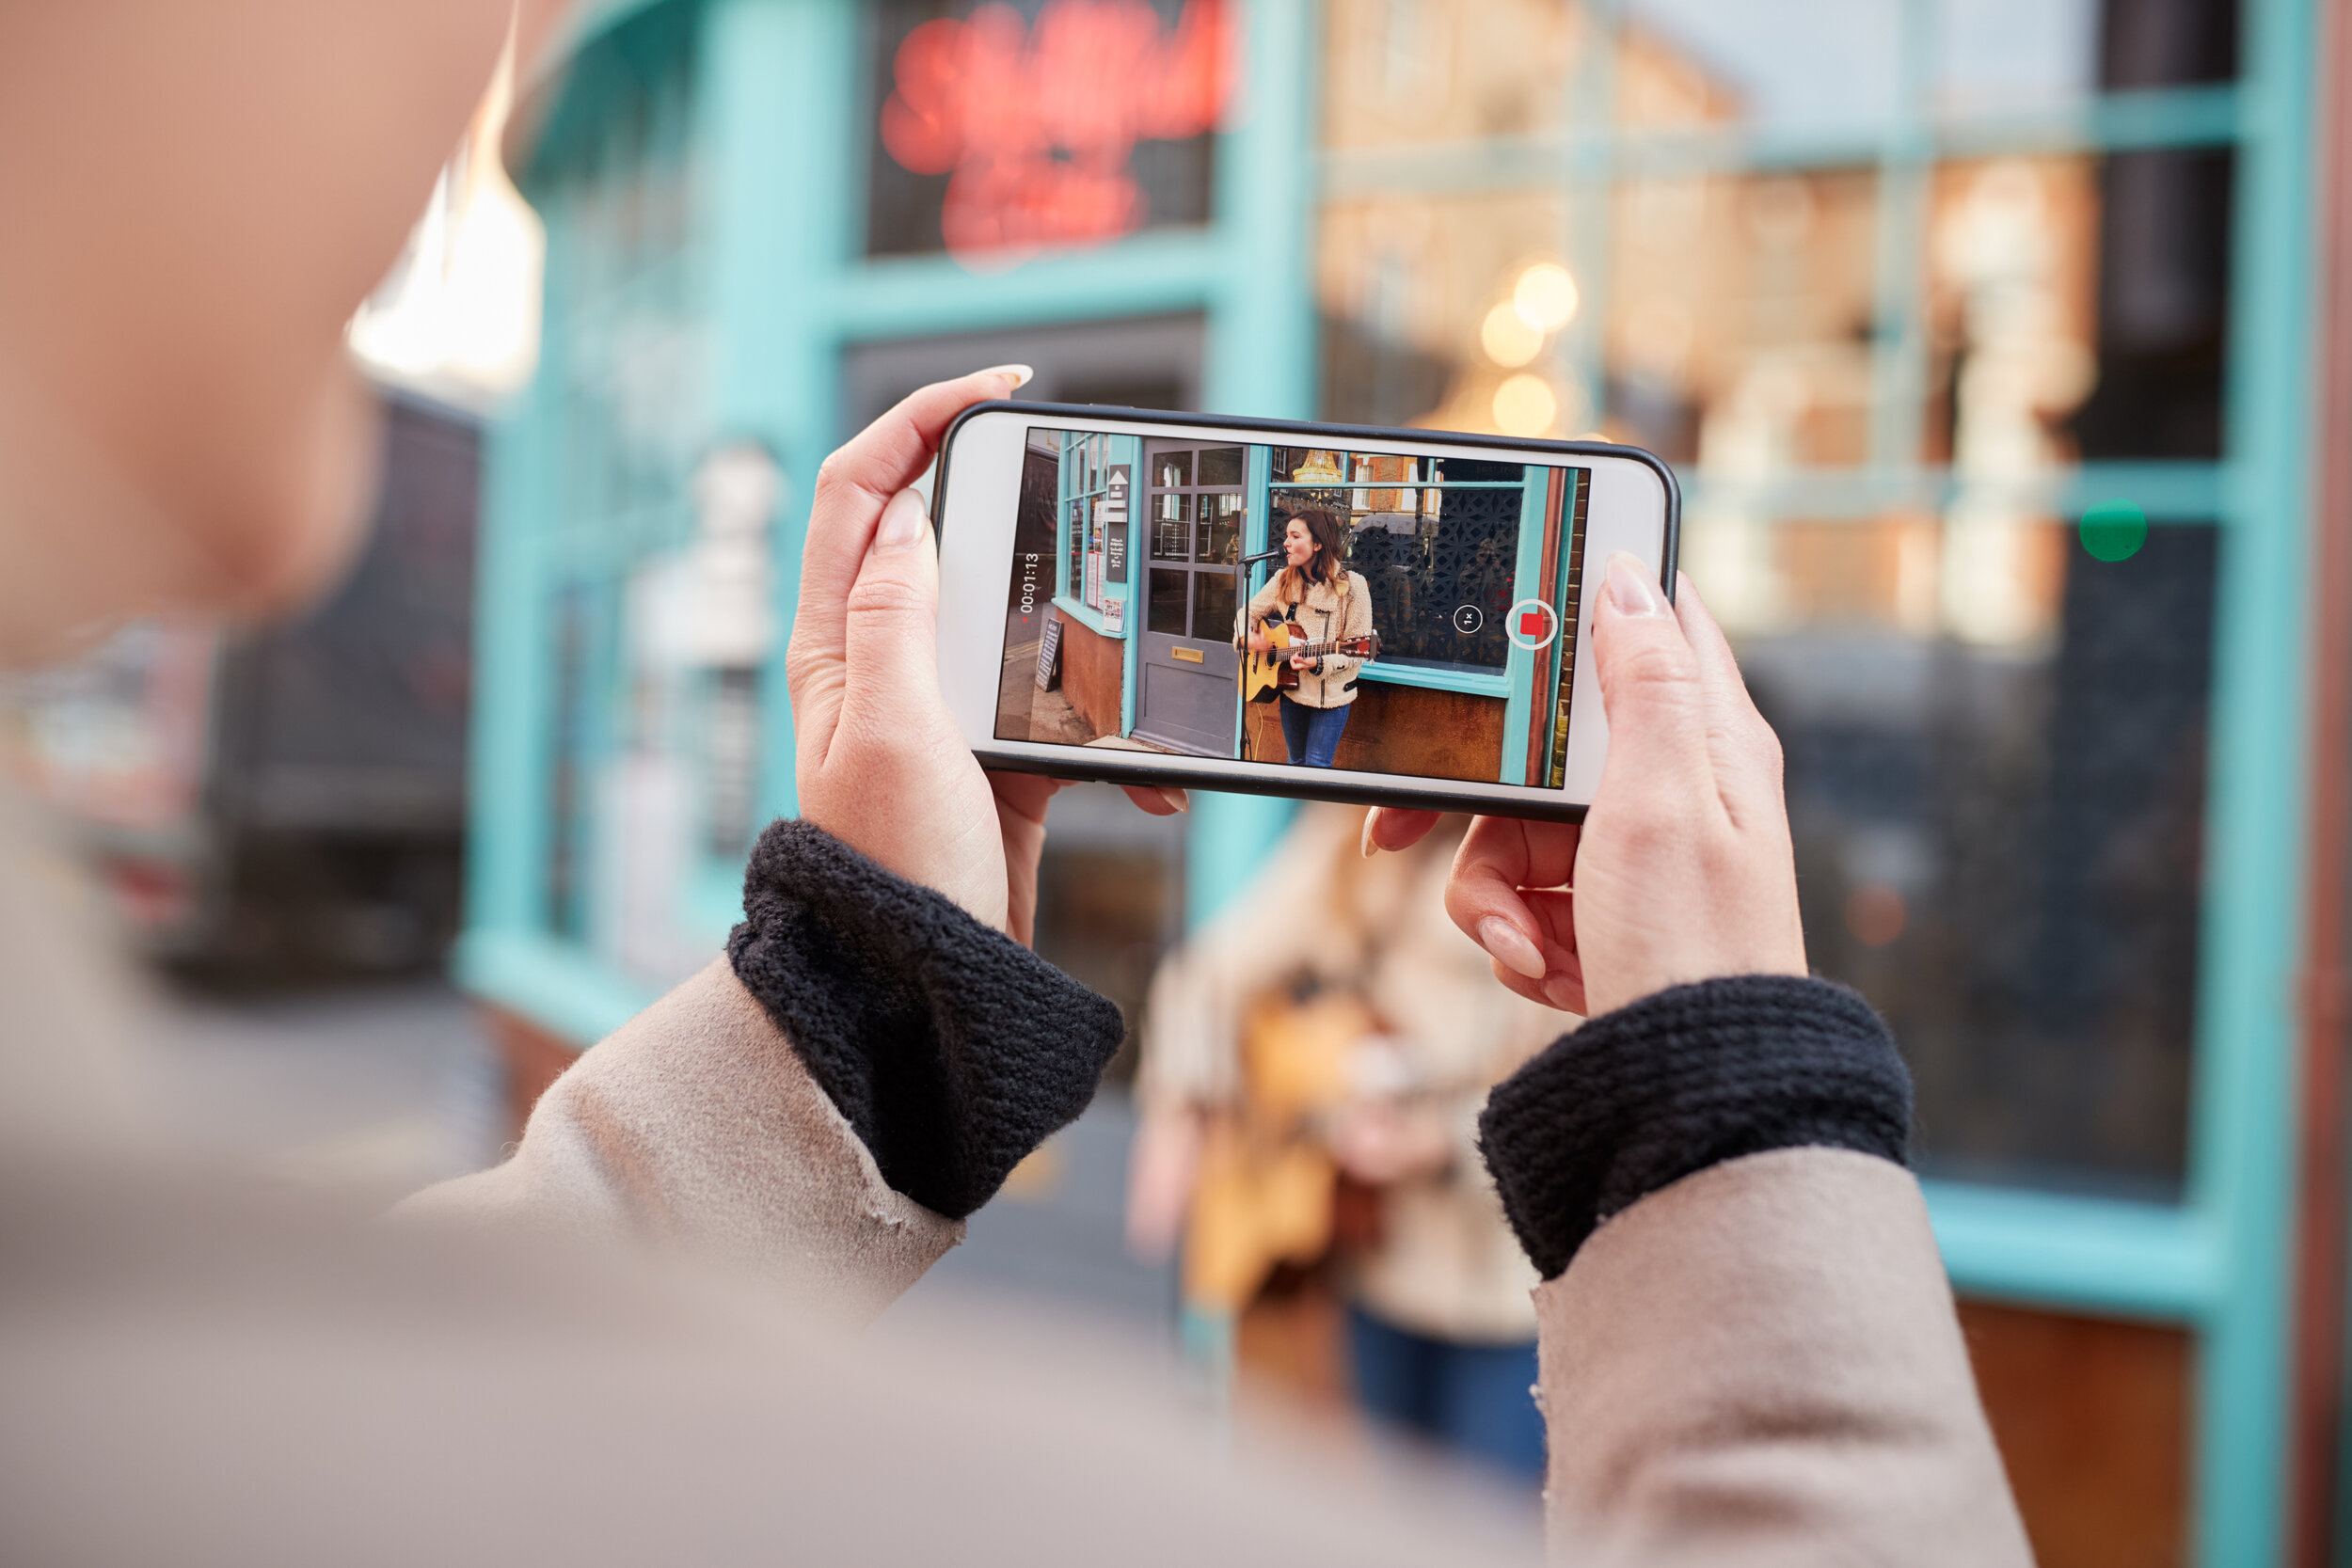 person-filming-female-musician-busking-playing-aco-7ZDHS3N.jpg